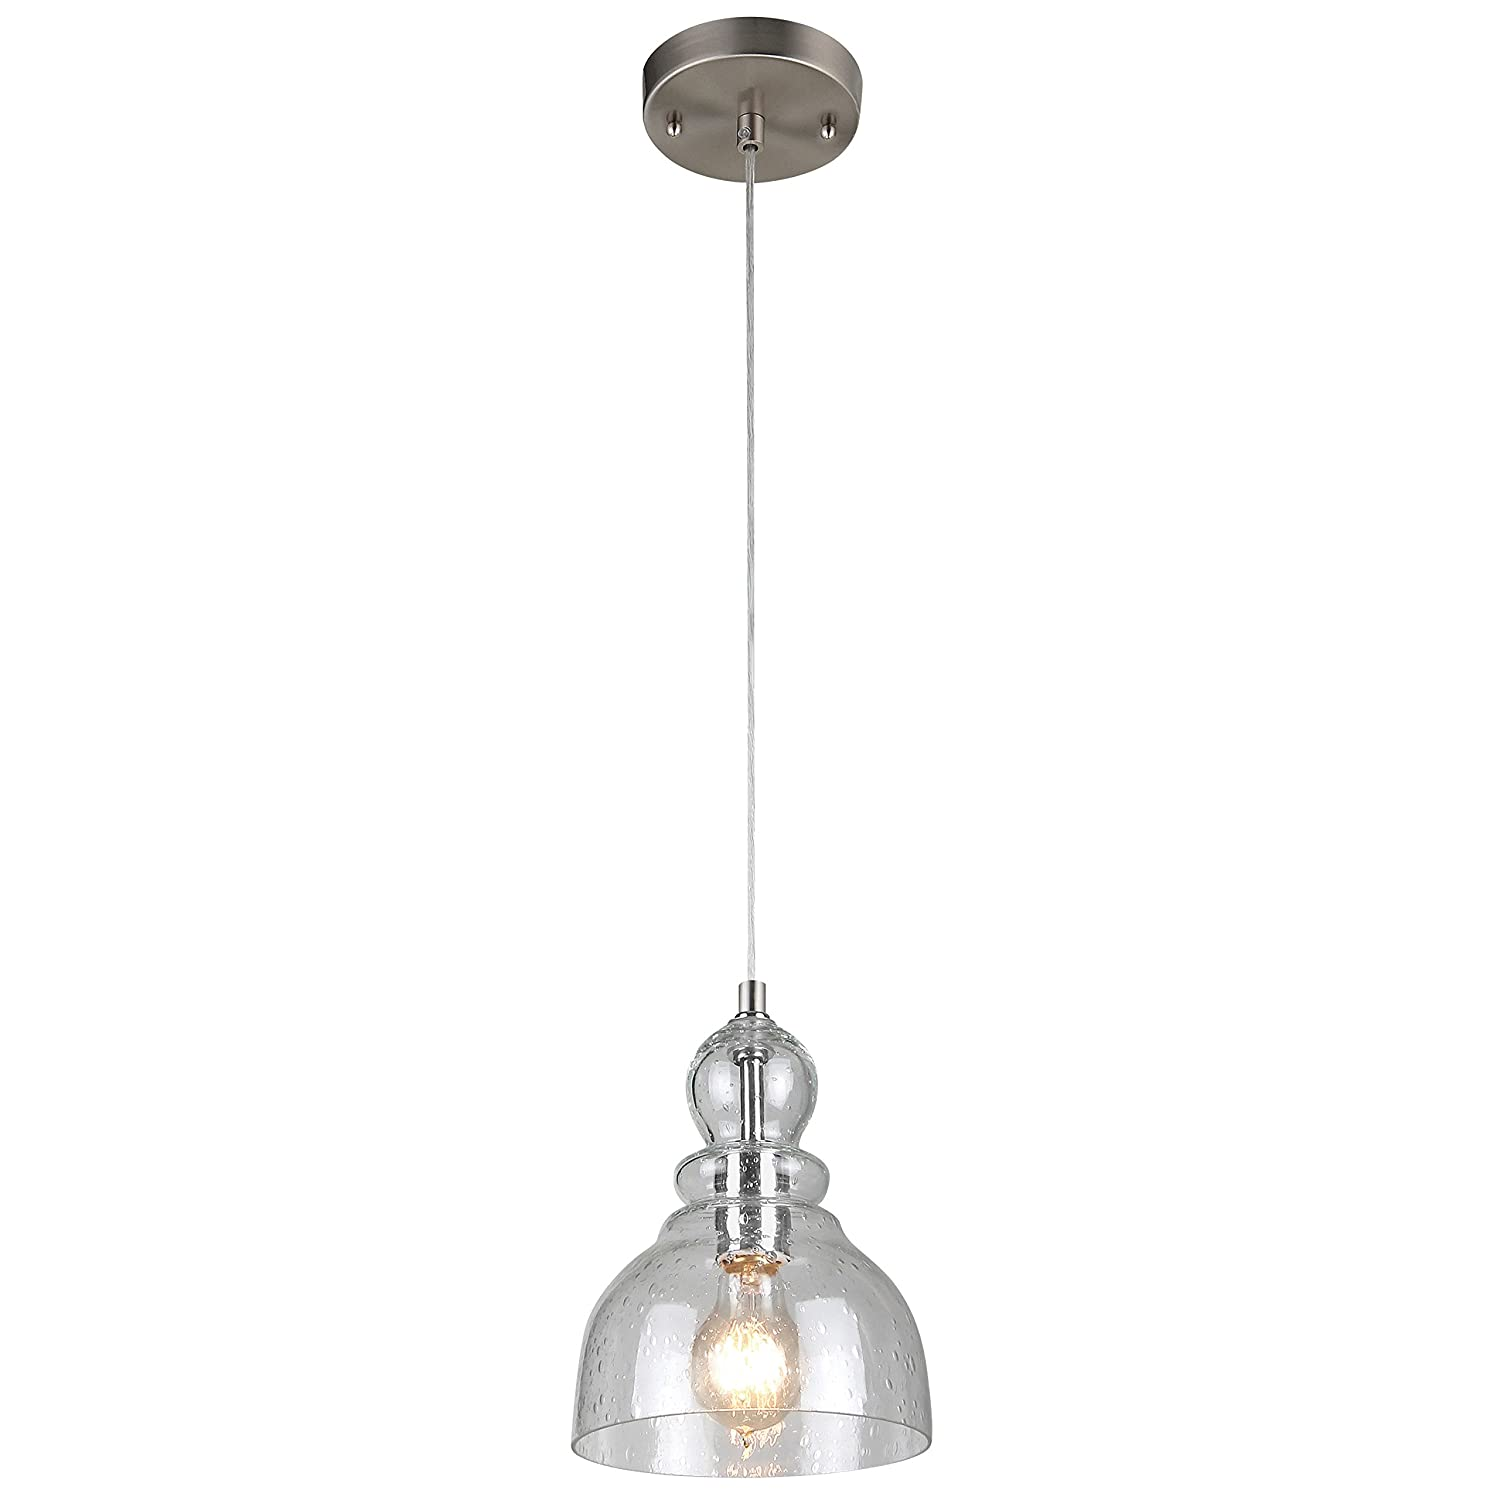 Satin Nickel Pendant Light Part - 43: Westinghouse 6100700 Industrial One-Light Adjustable Mini Pendant With  Handblown Clear Seeded Glass, Brushed Nickel Finish - - Amazon.com